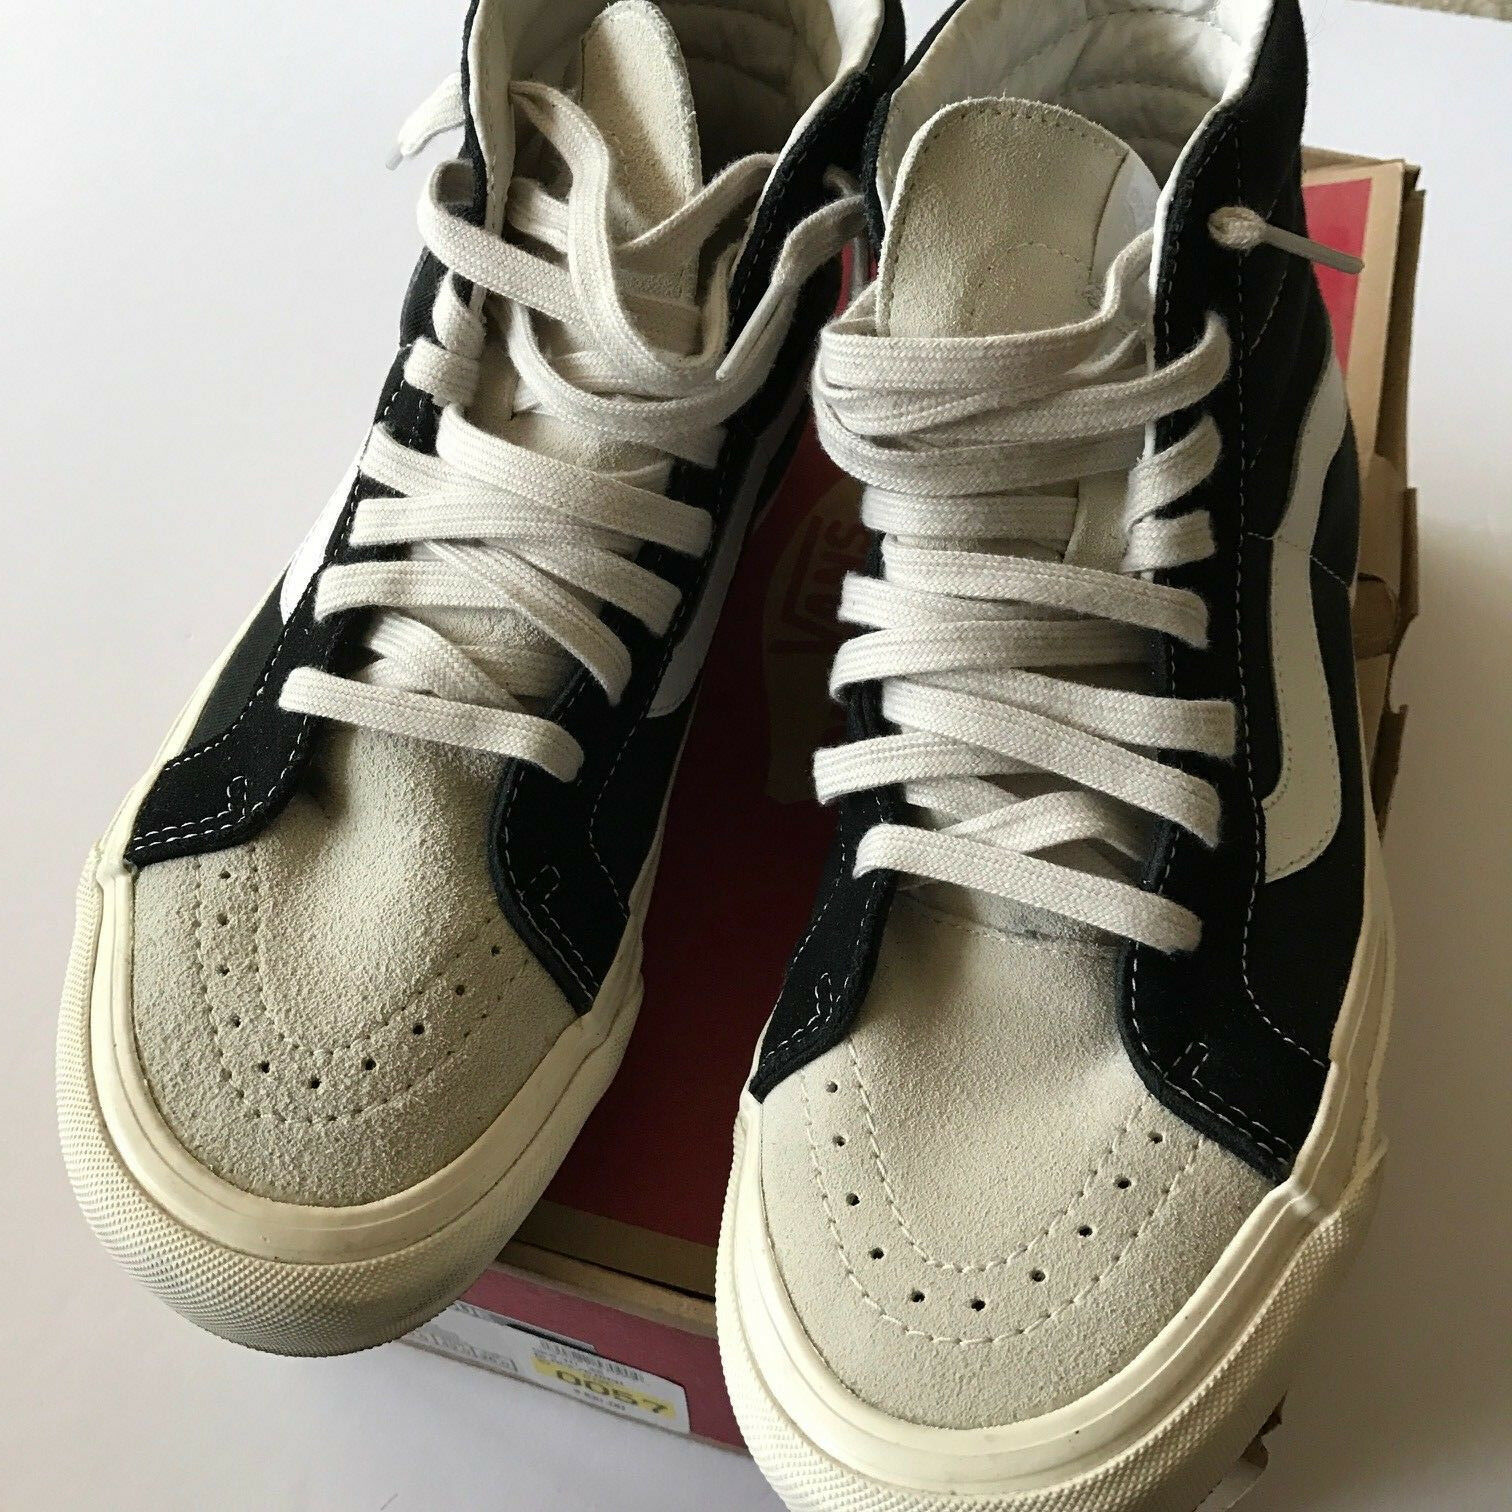 Fear of God x Vans FOG Sk8-Hi sz.10 38 Re-Issue